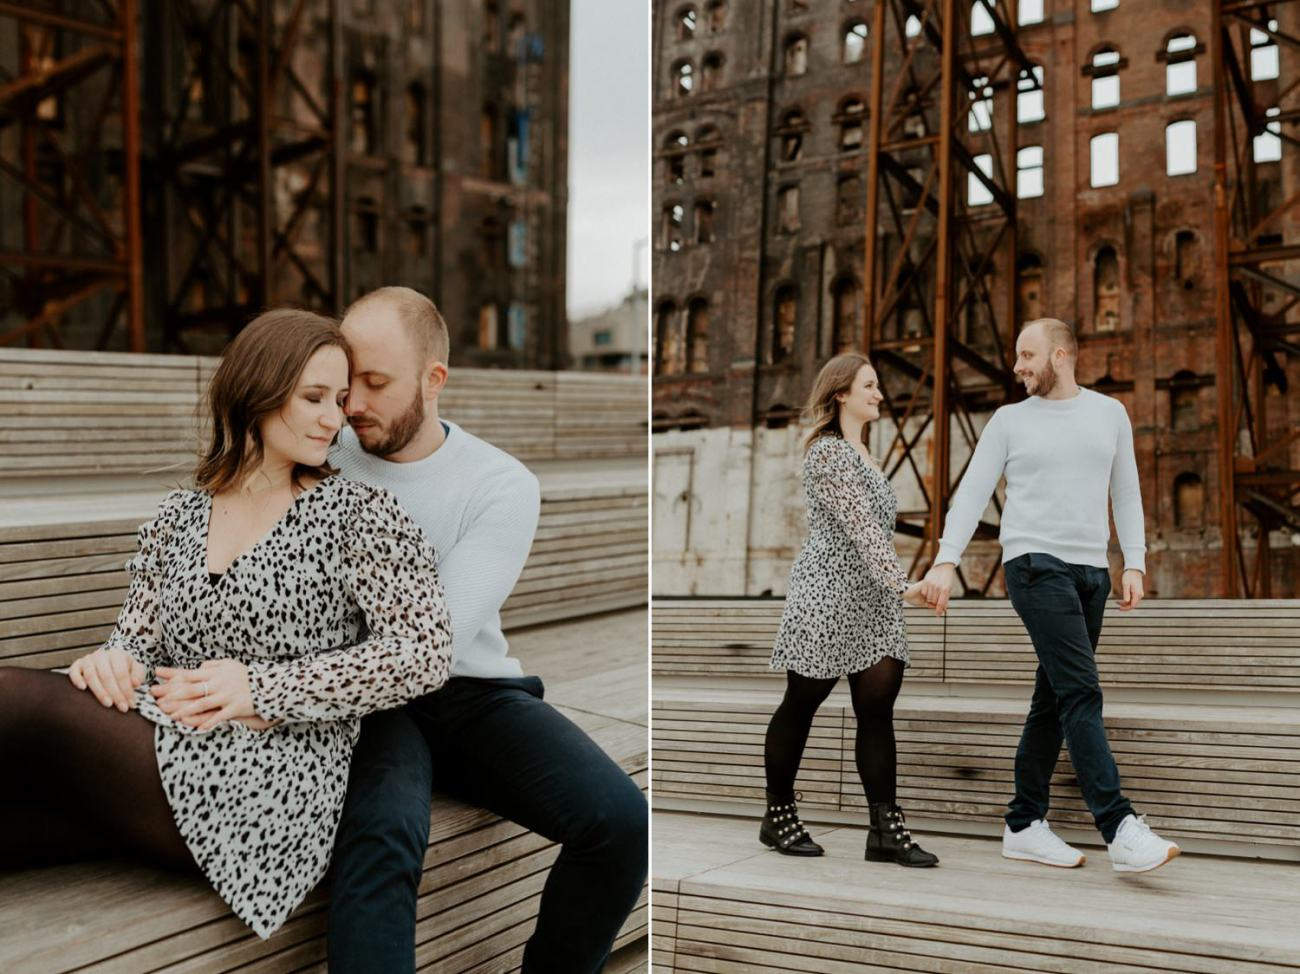 Williamsburg Brooklyn Couple Session Brooklyn Bridge Couple Photos Anais Possamai Photography 16